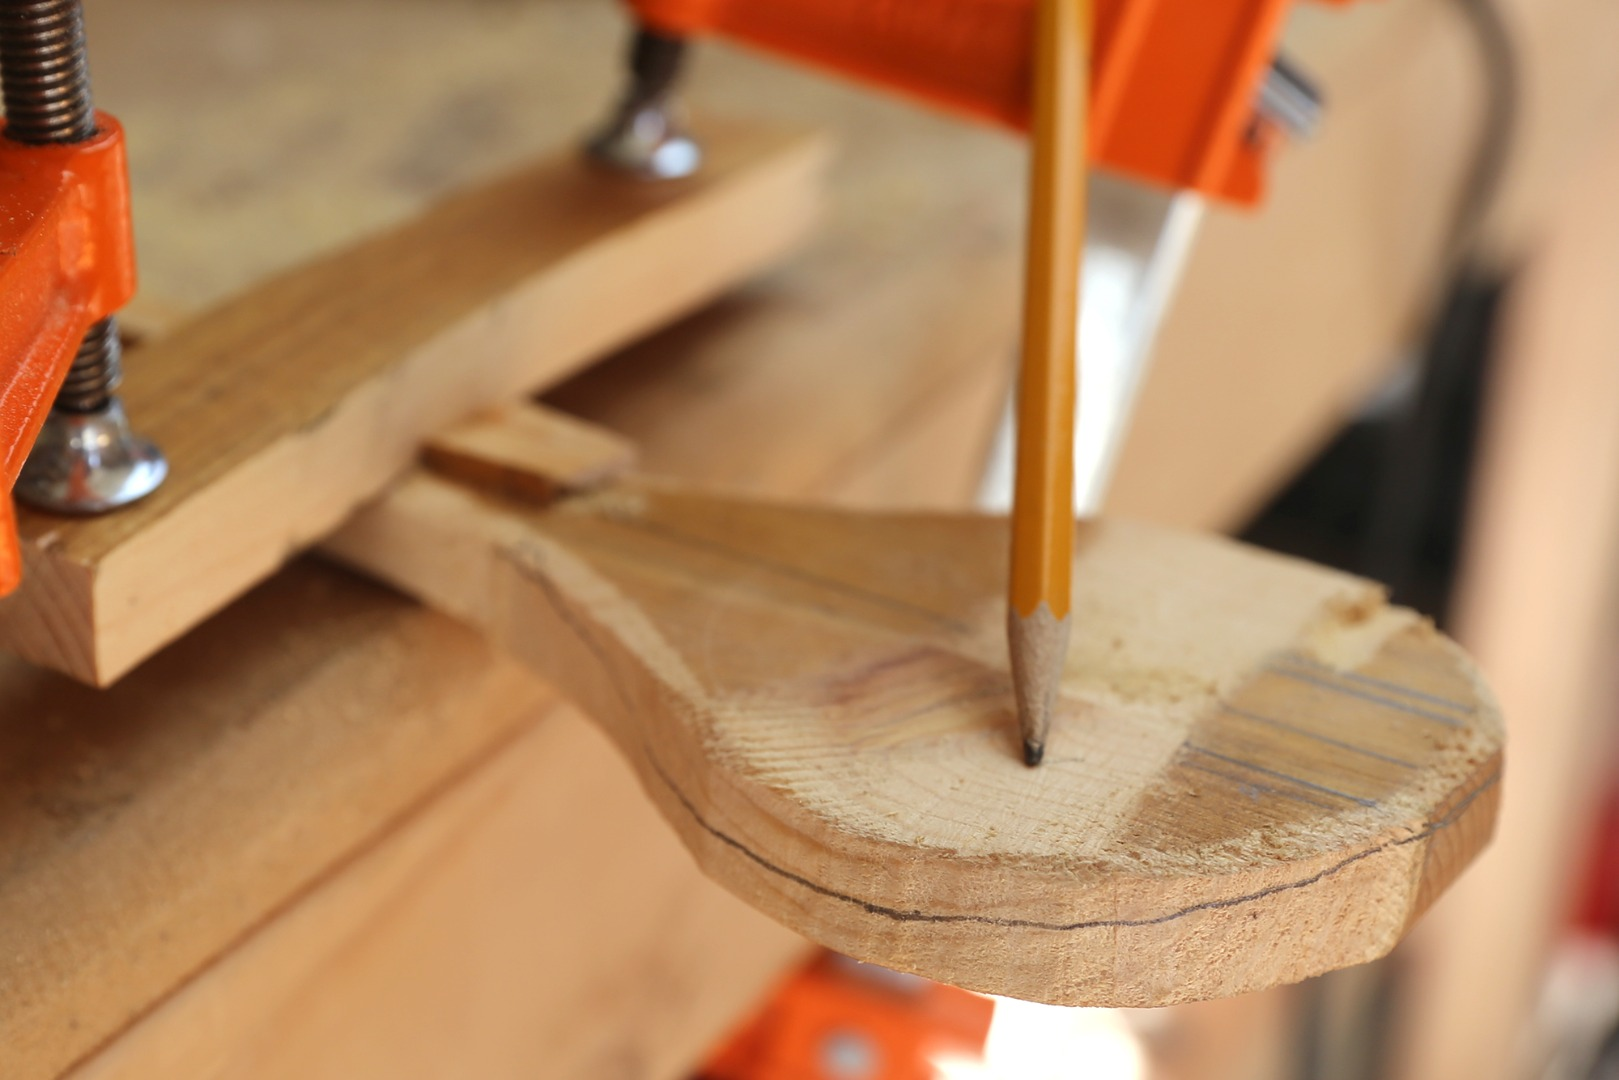 Picture of Rough Shaping With Rasp - Curved Side